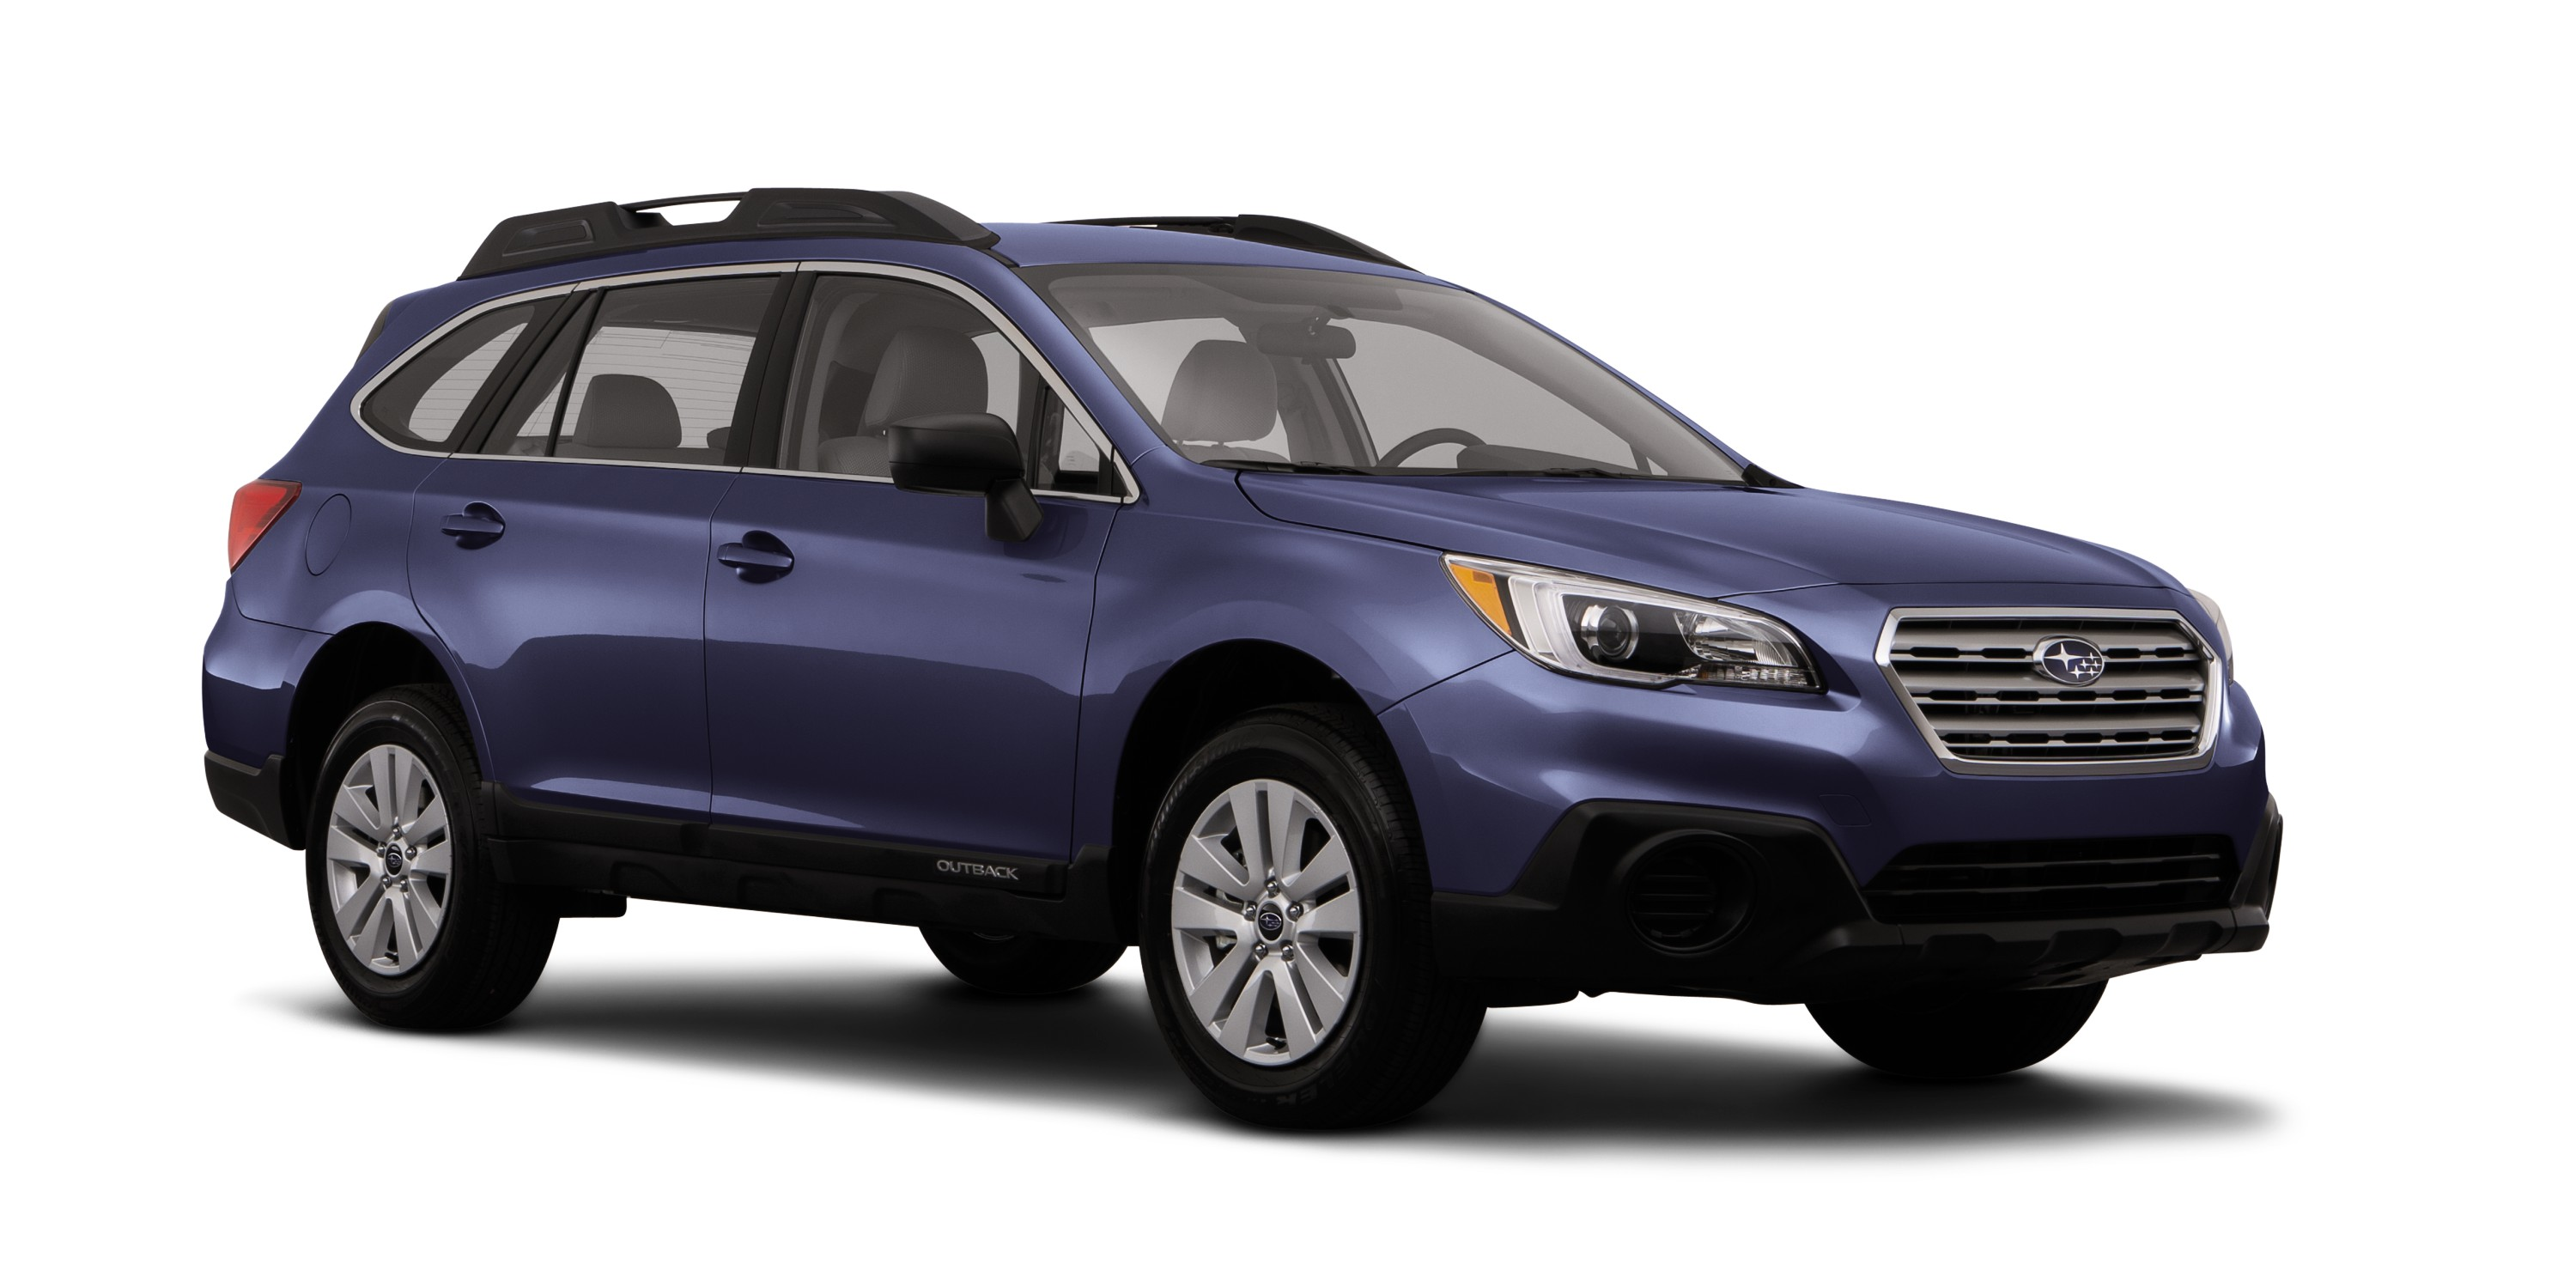 2017 subaru outback review carfax. Black Bedroom Furniture Sets. Home Design Ideas